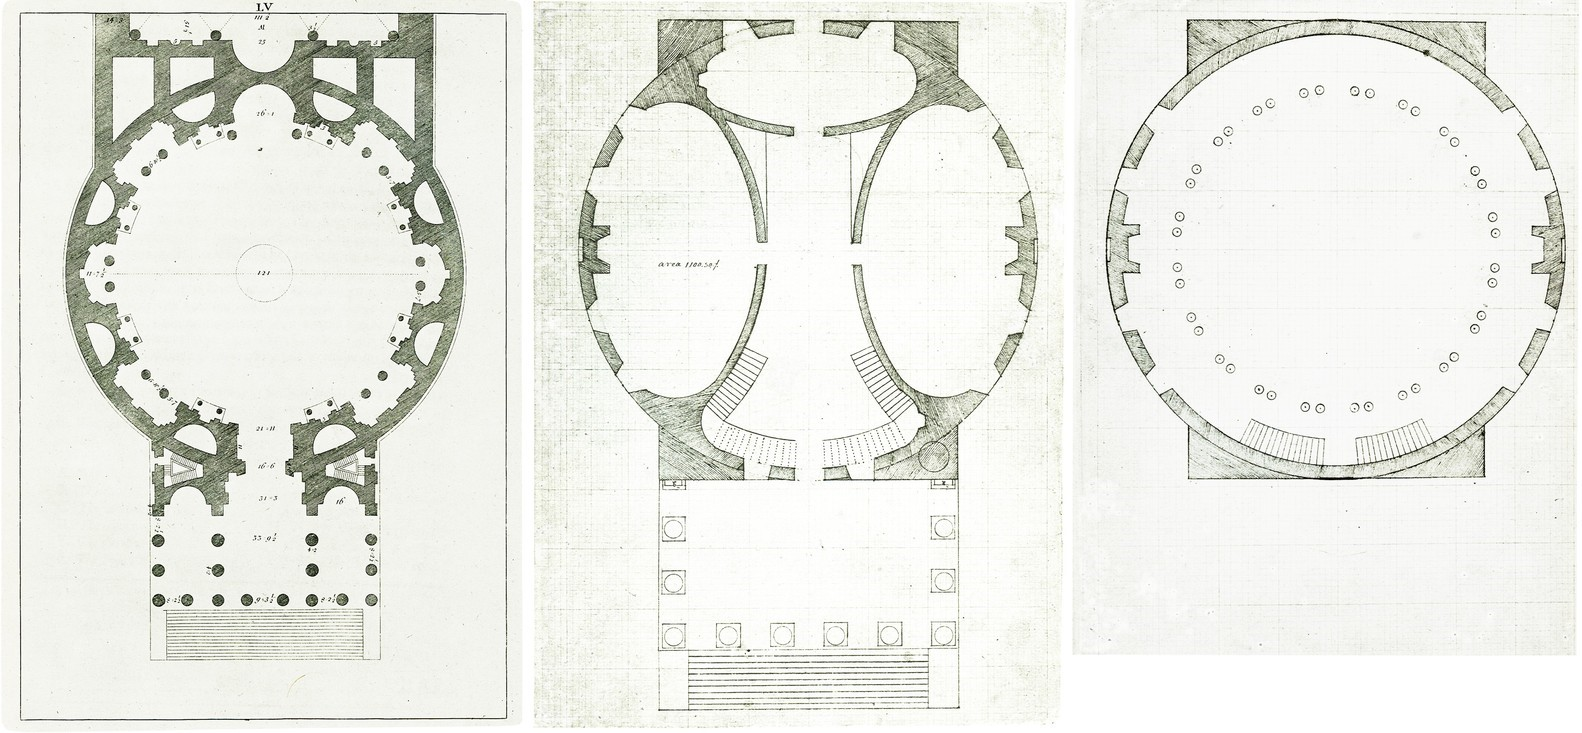 Comparison of the Roman Pantheon and Rotunda